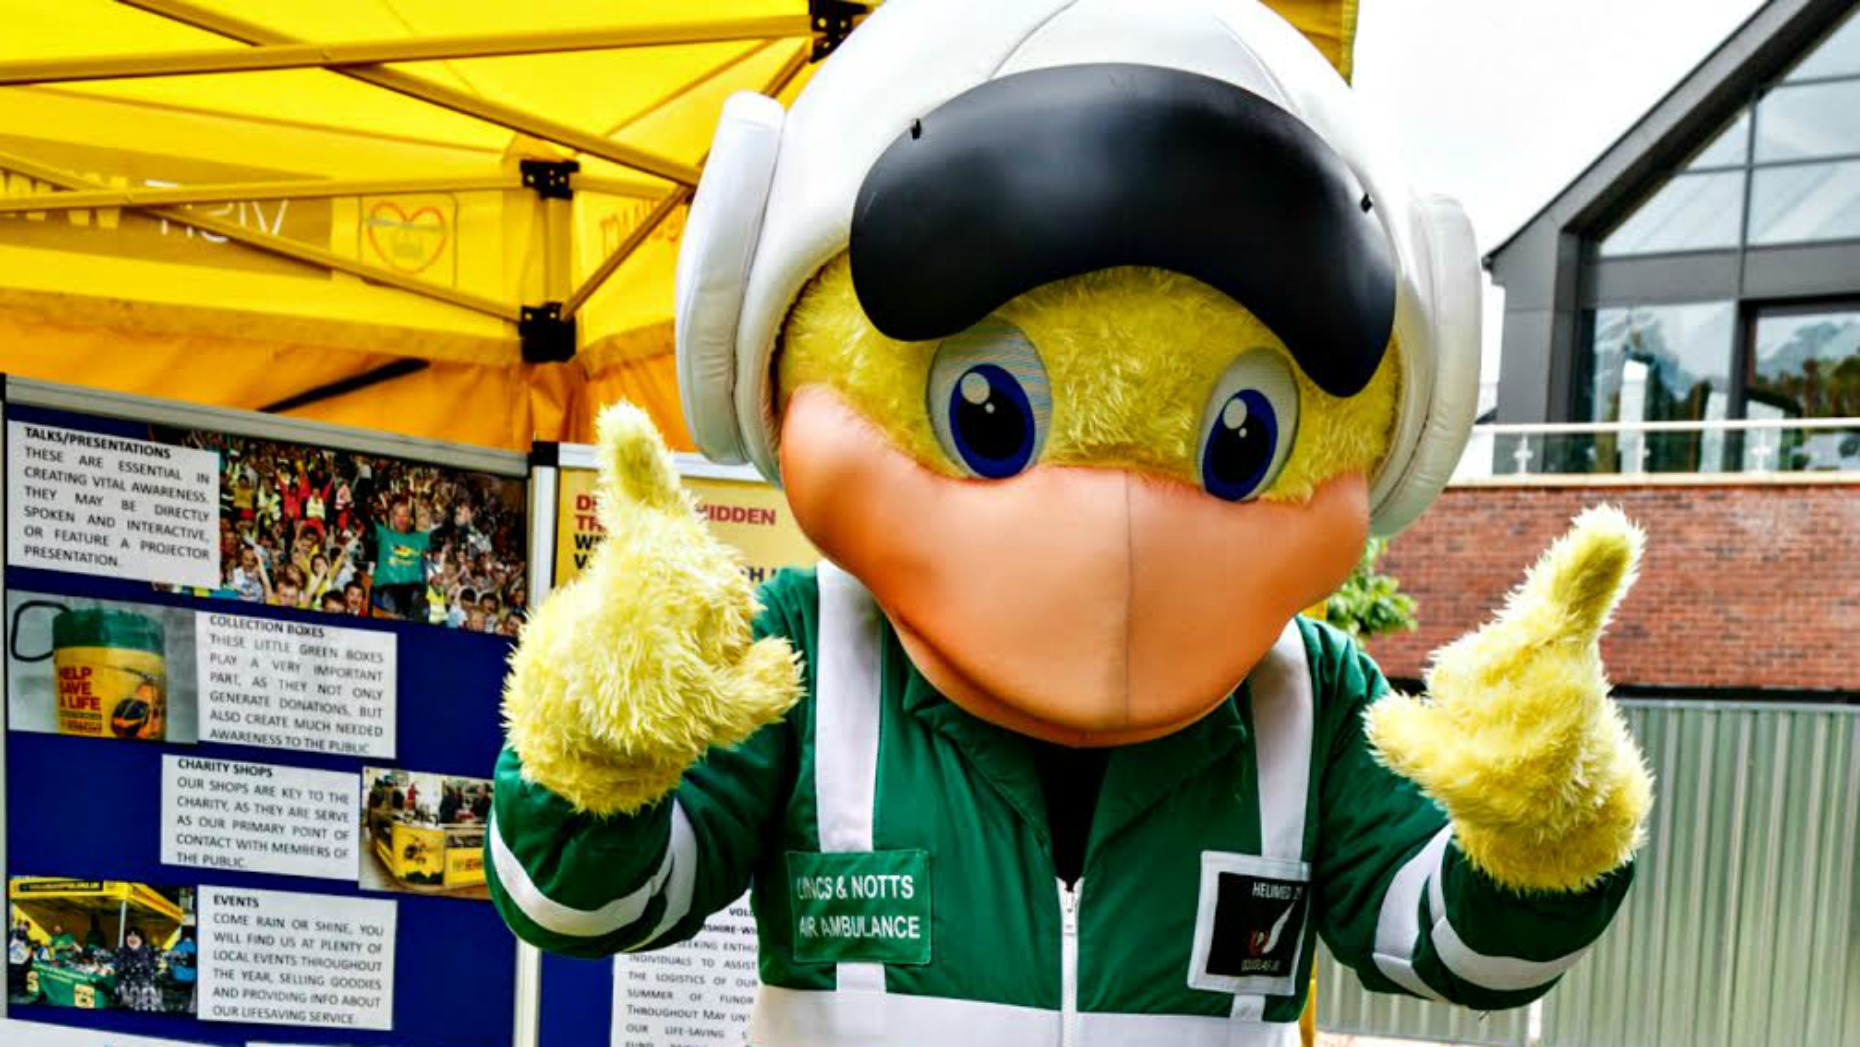 Lincolnshire and Nottinghamshire Air Ambulance have also set up a competition for primary school children to name the new helicopter.